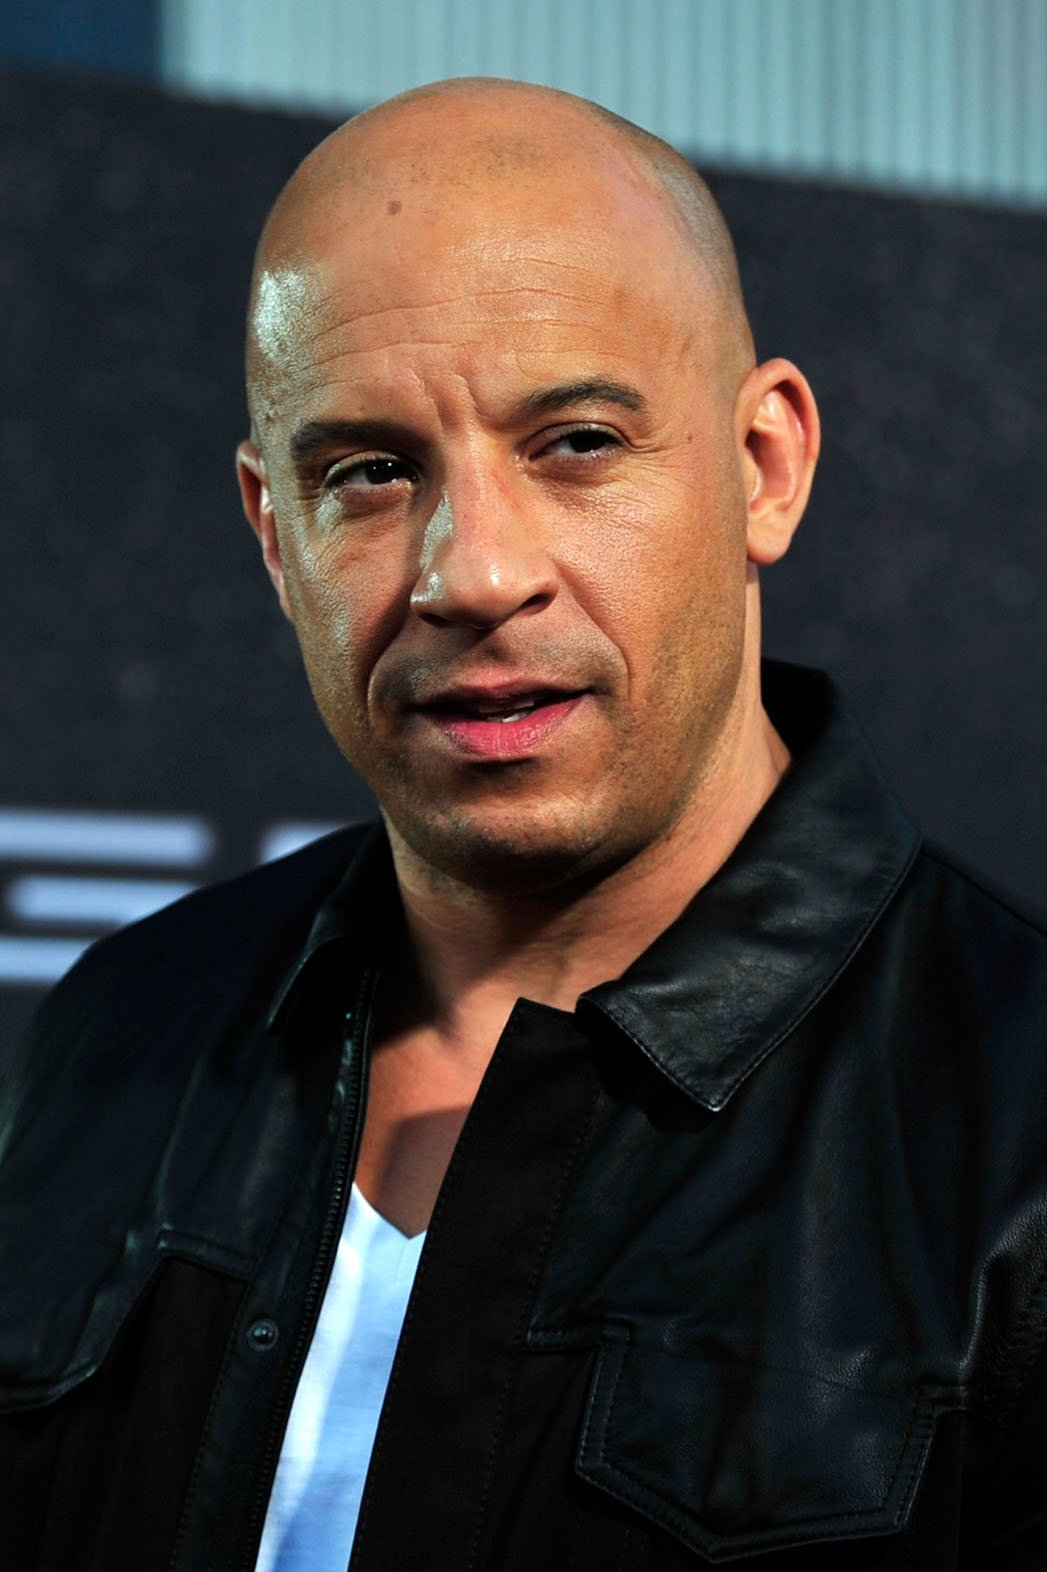 vin diesel height and weight measurements. Black Bedroom Furniture Sets. Home Design Ideas